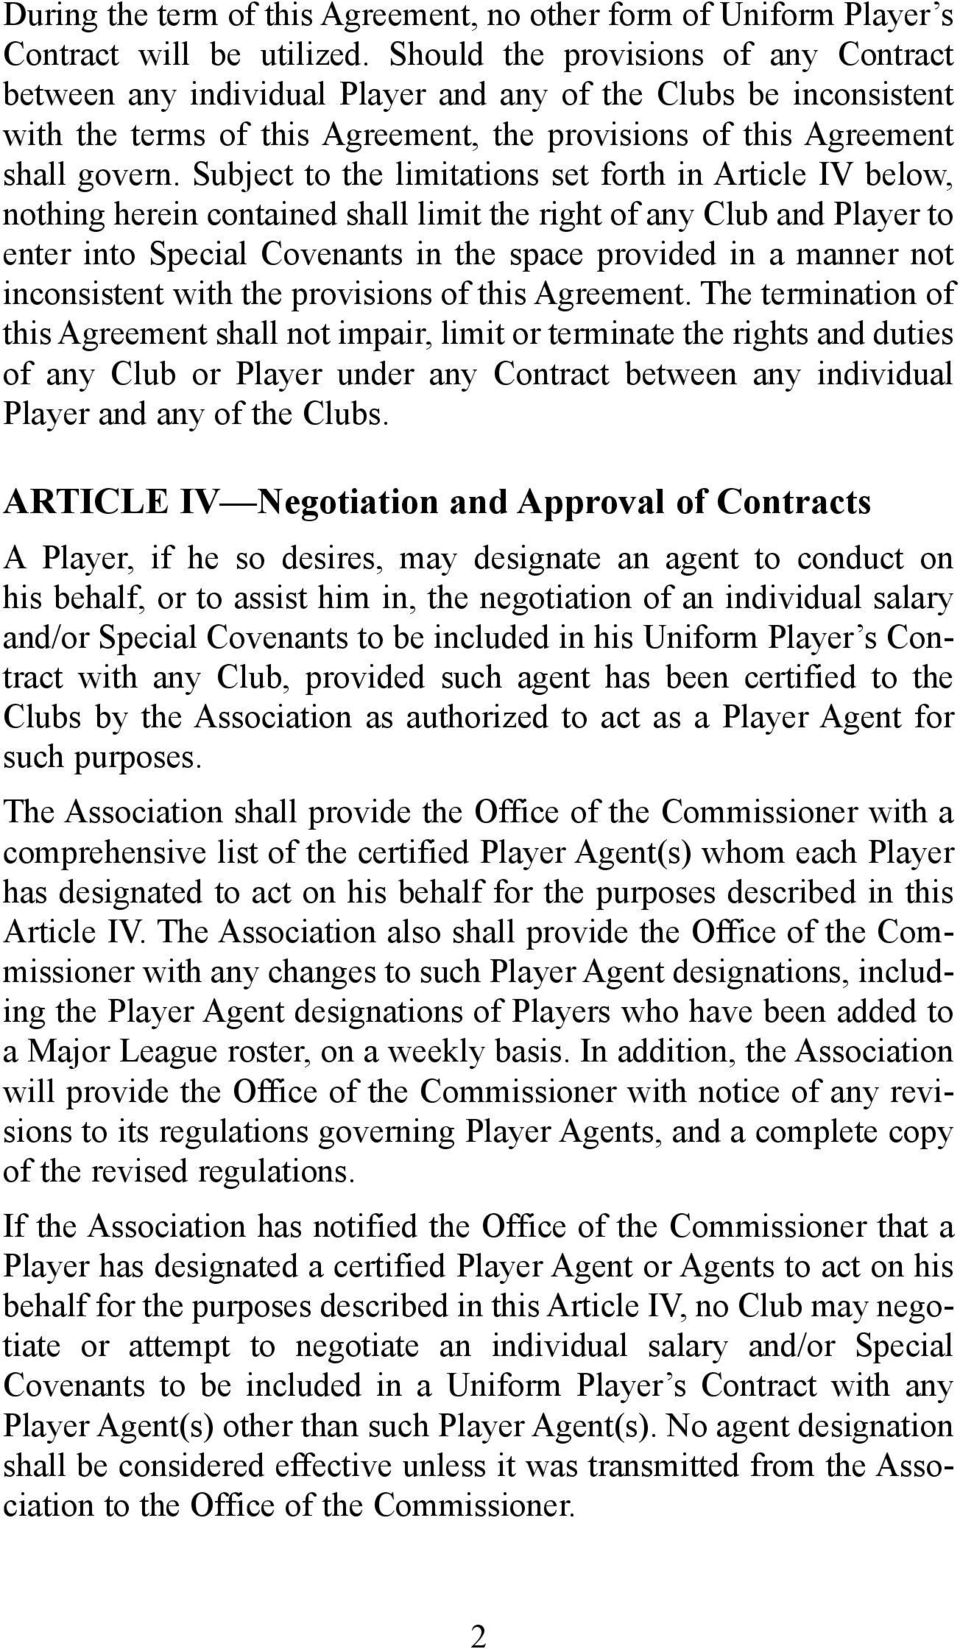 Subject to the limitations set forth in Article IV below, nothing herein contained shall limit the right of any Club and Player to enter into Special Covenants in the space provided in a manner not